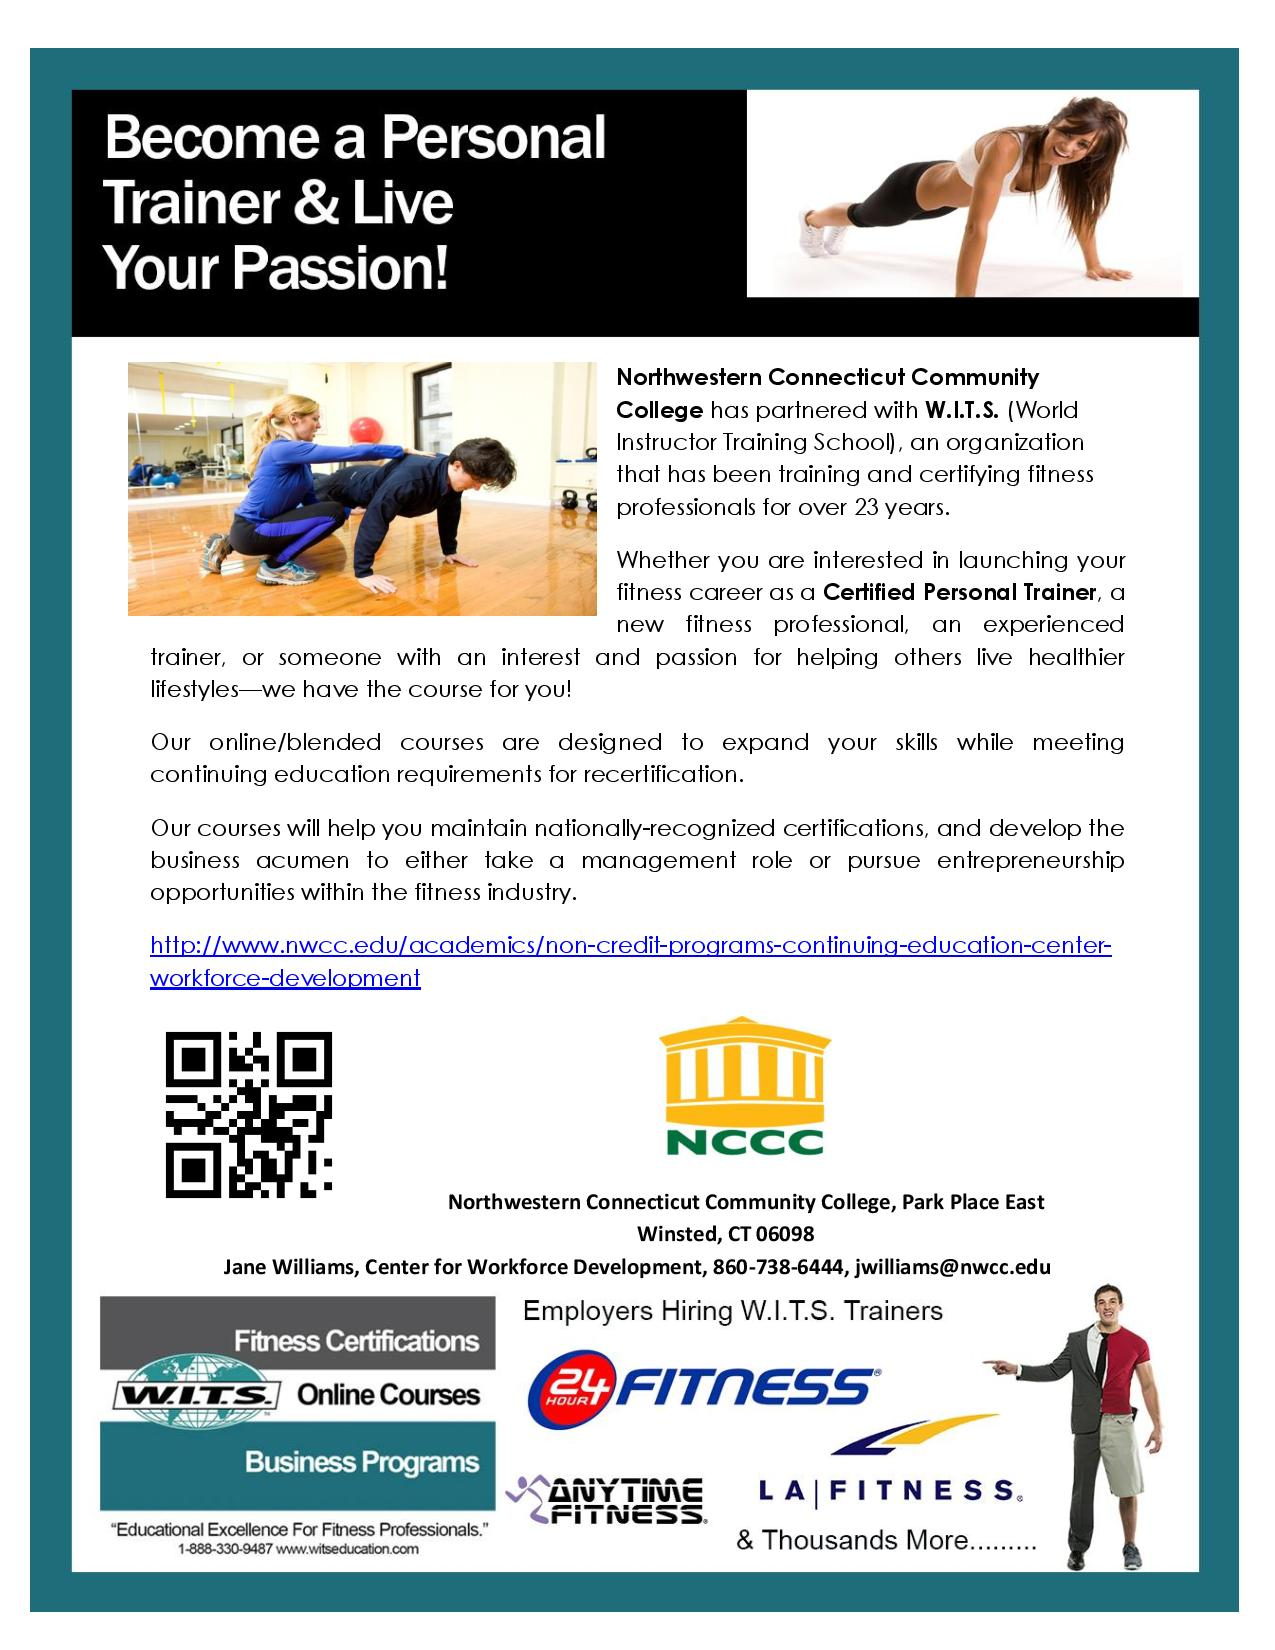 Become A Certified Personal Trainer